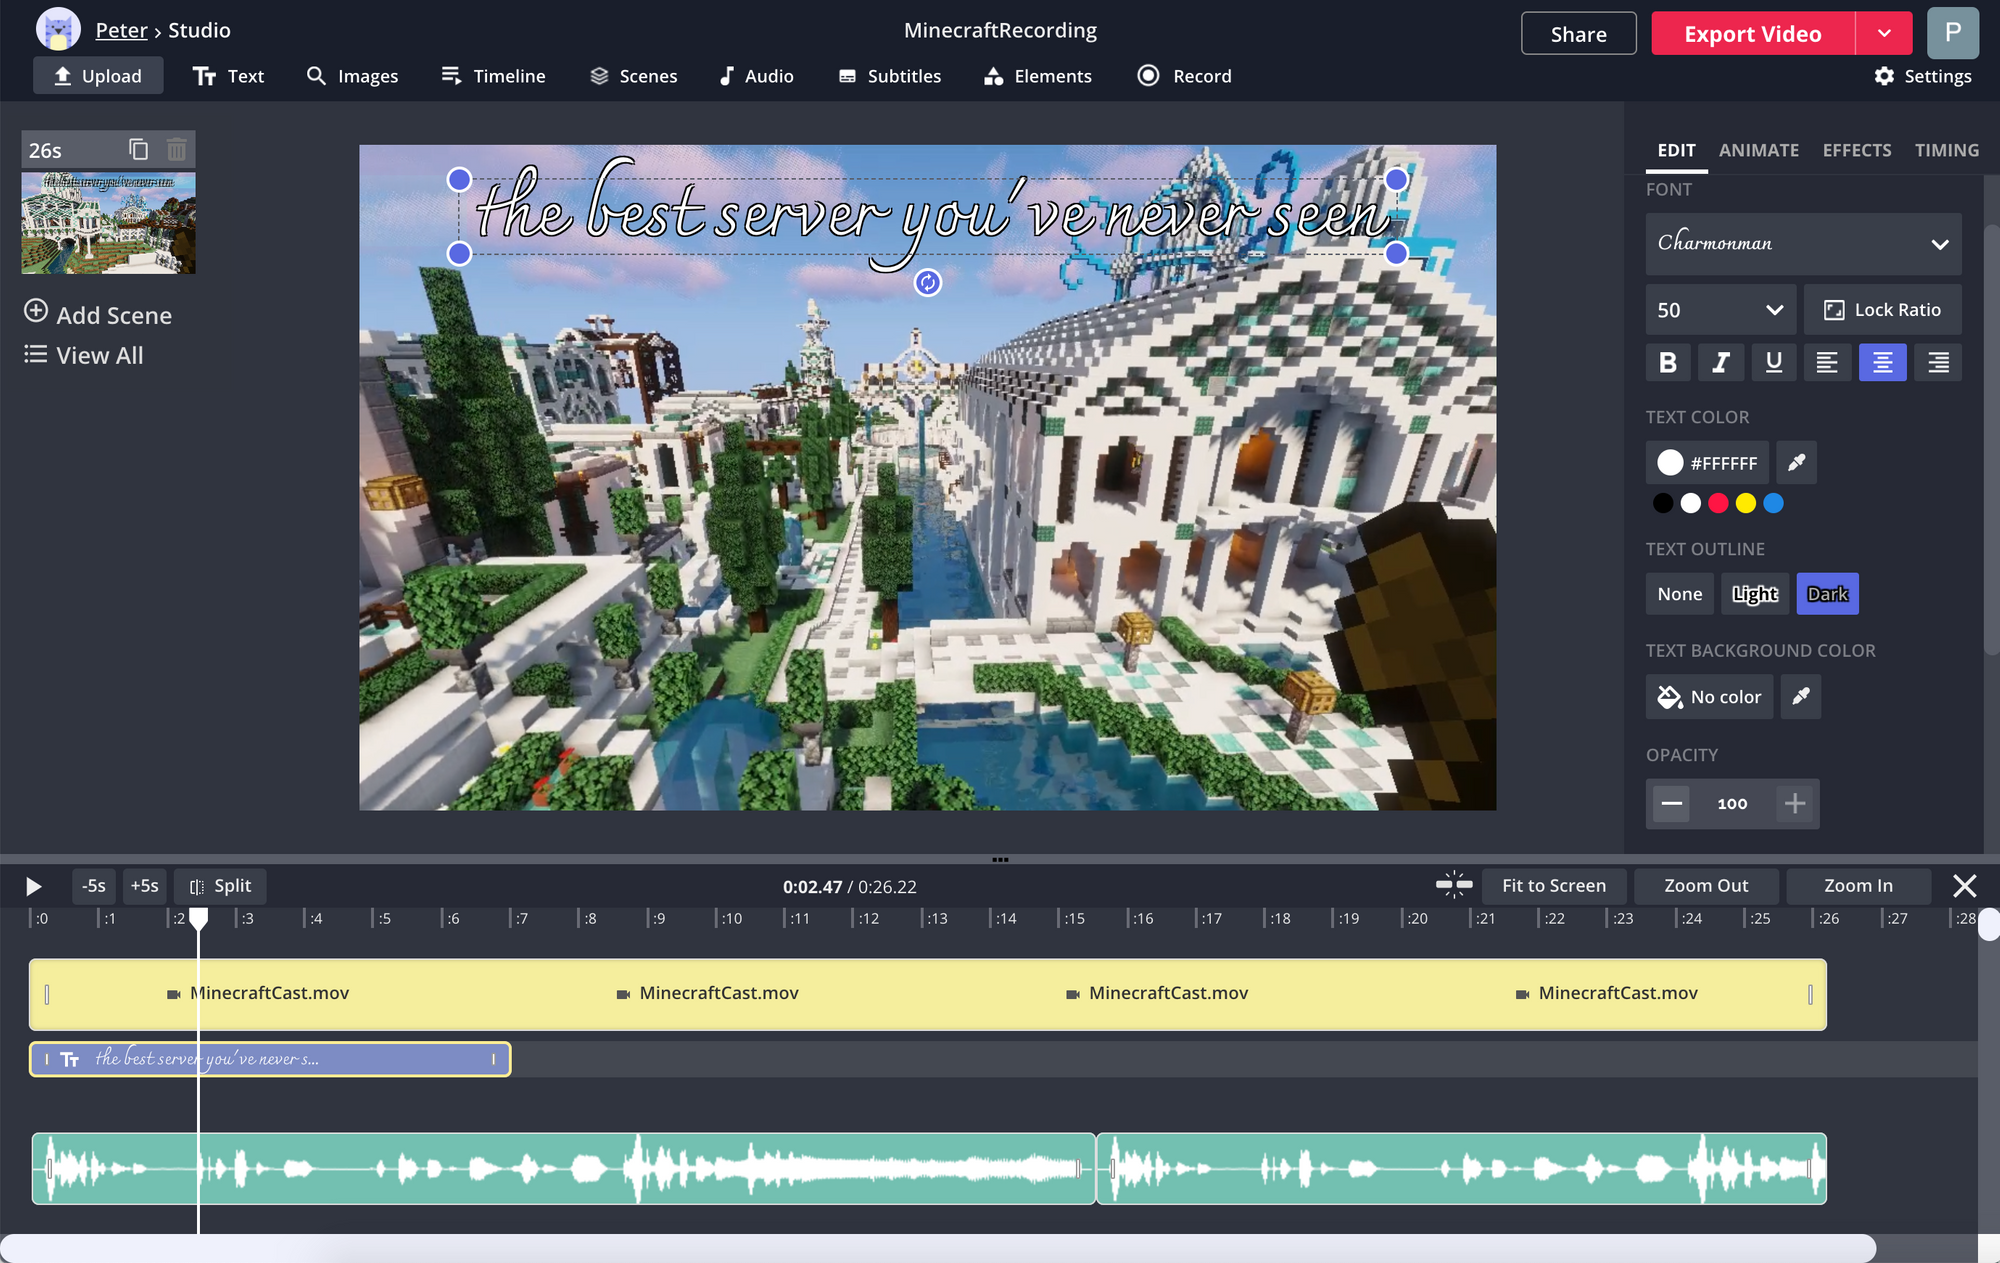 A screenshot showing the video editing options in the Kapwing Studio.